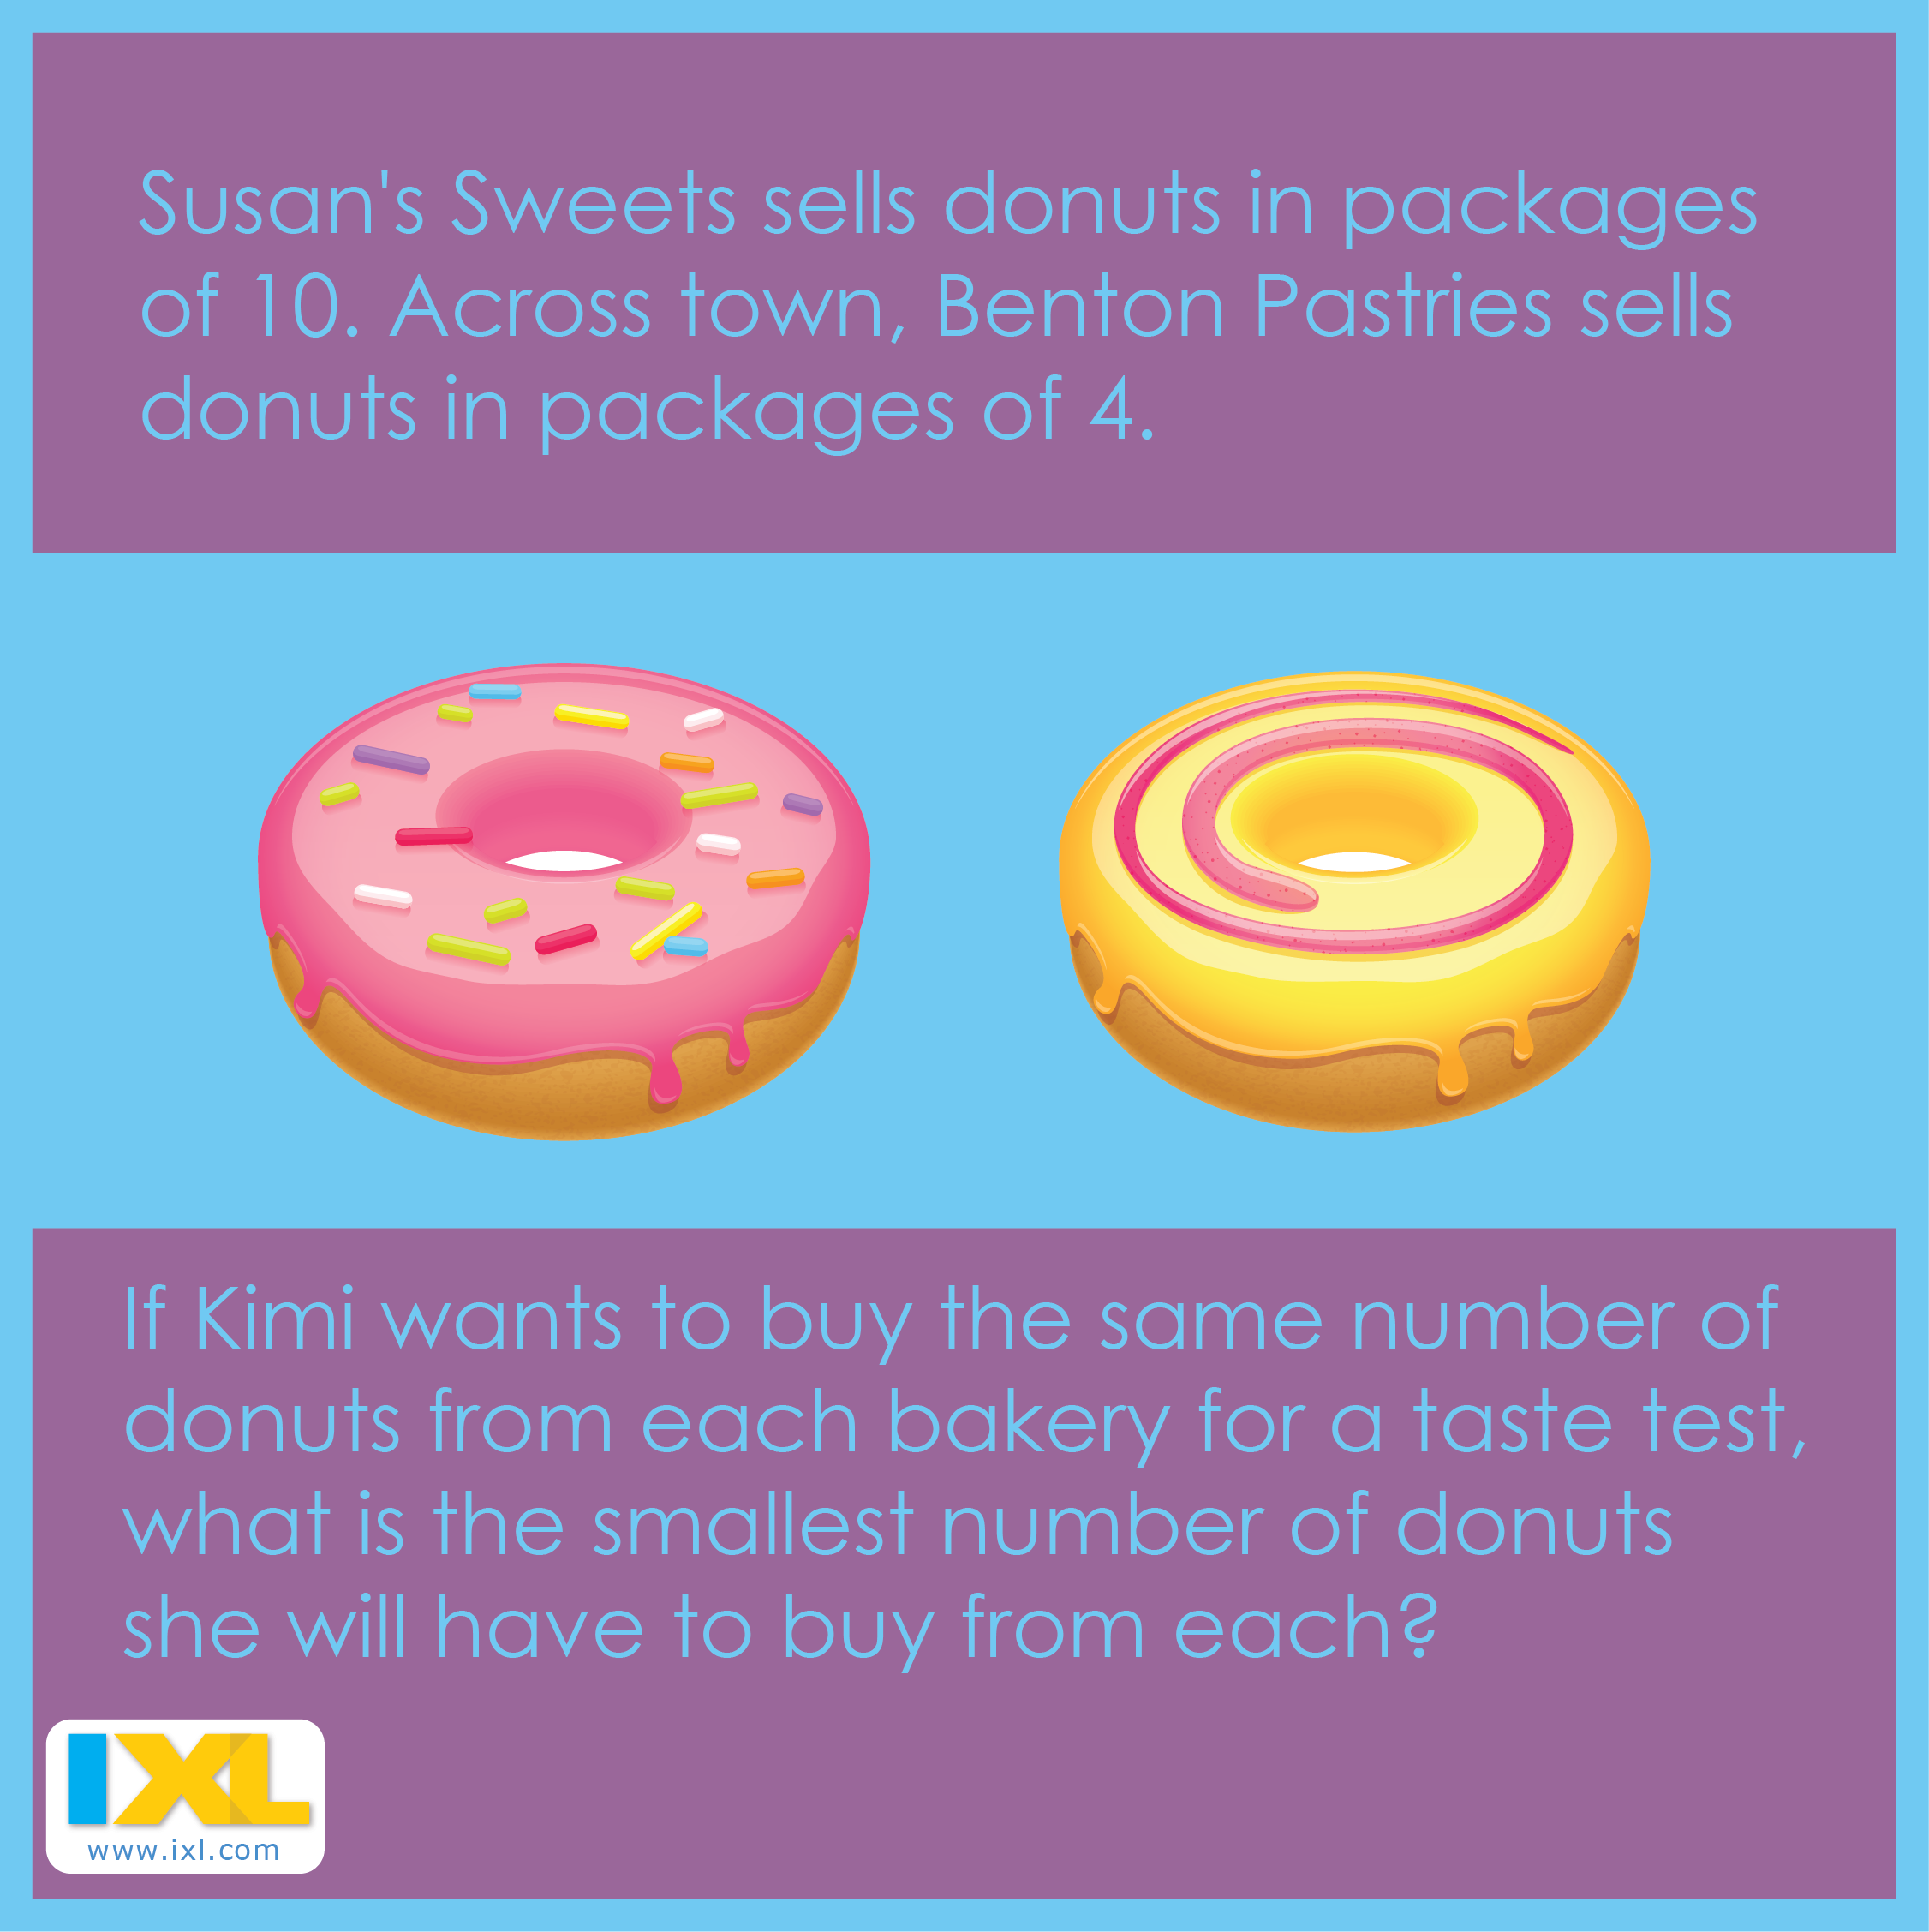 This week's MathPuzzle is pretty sweet! Maths puzzles